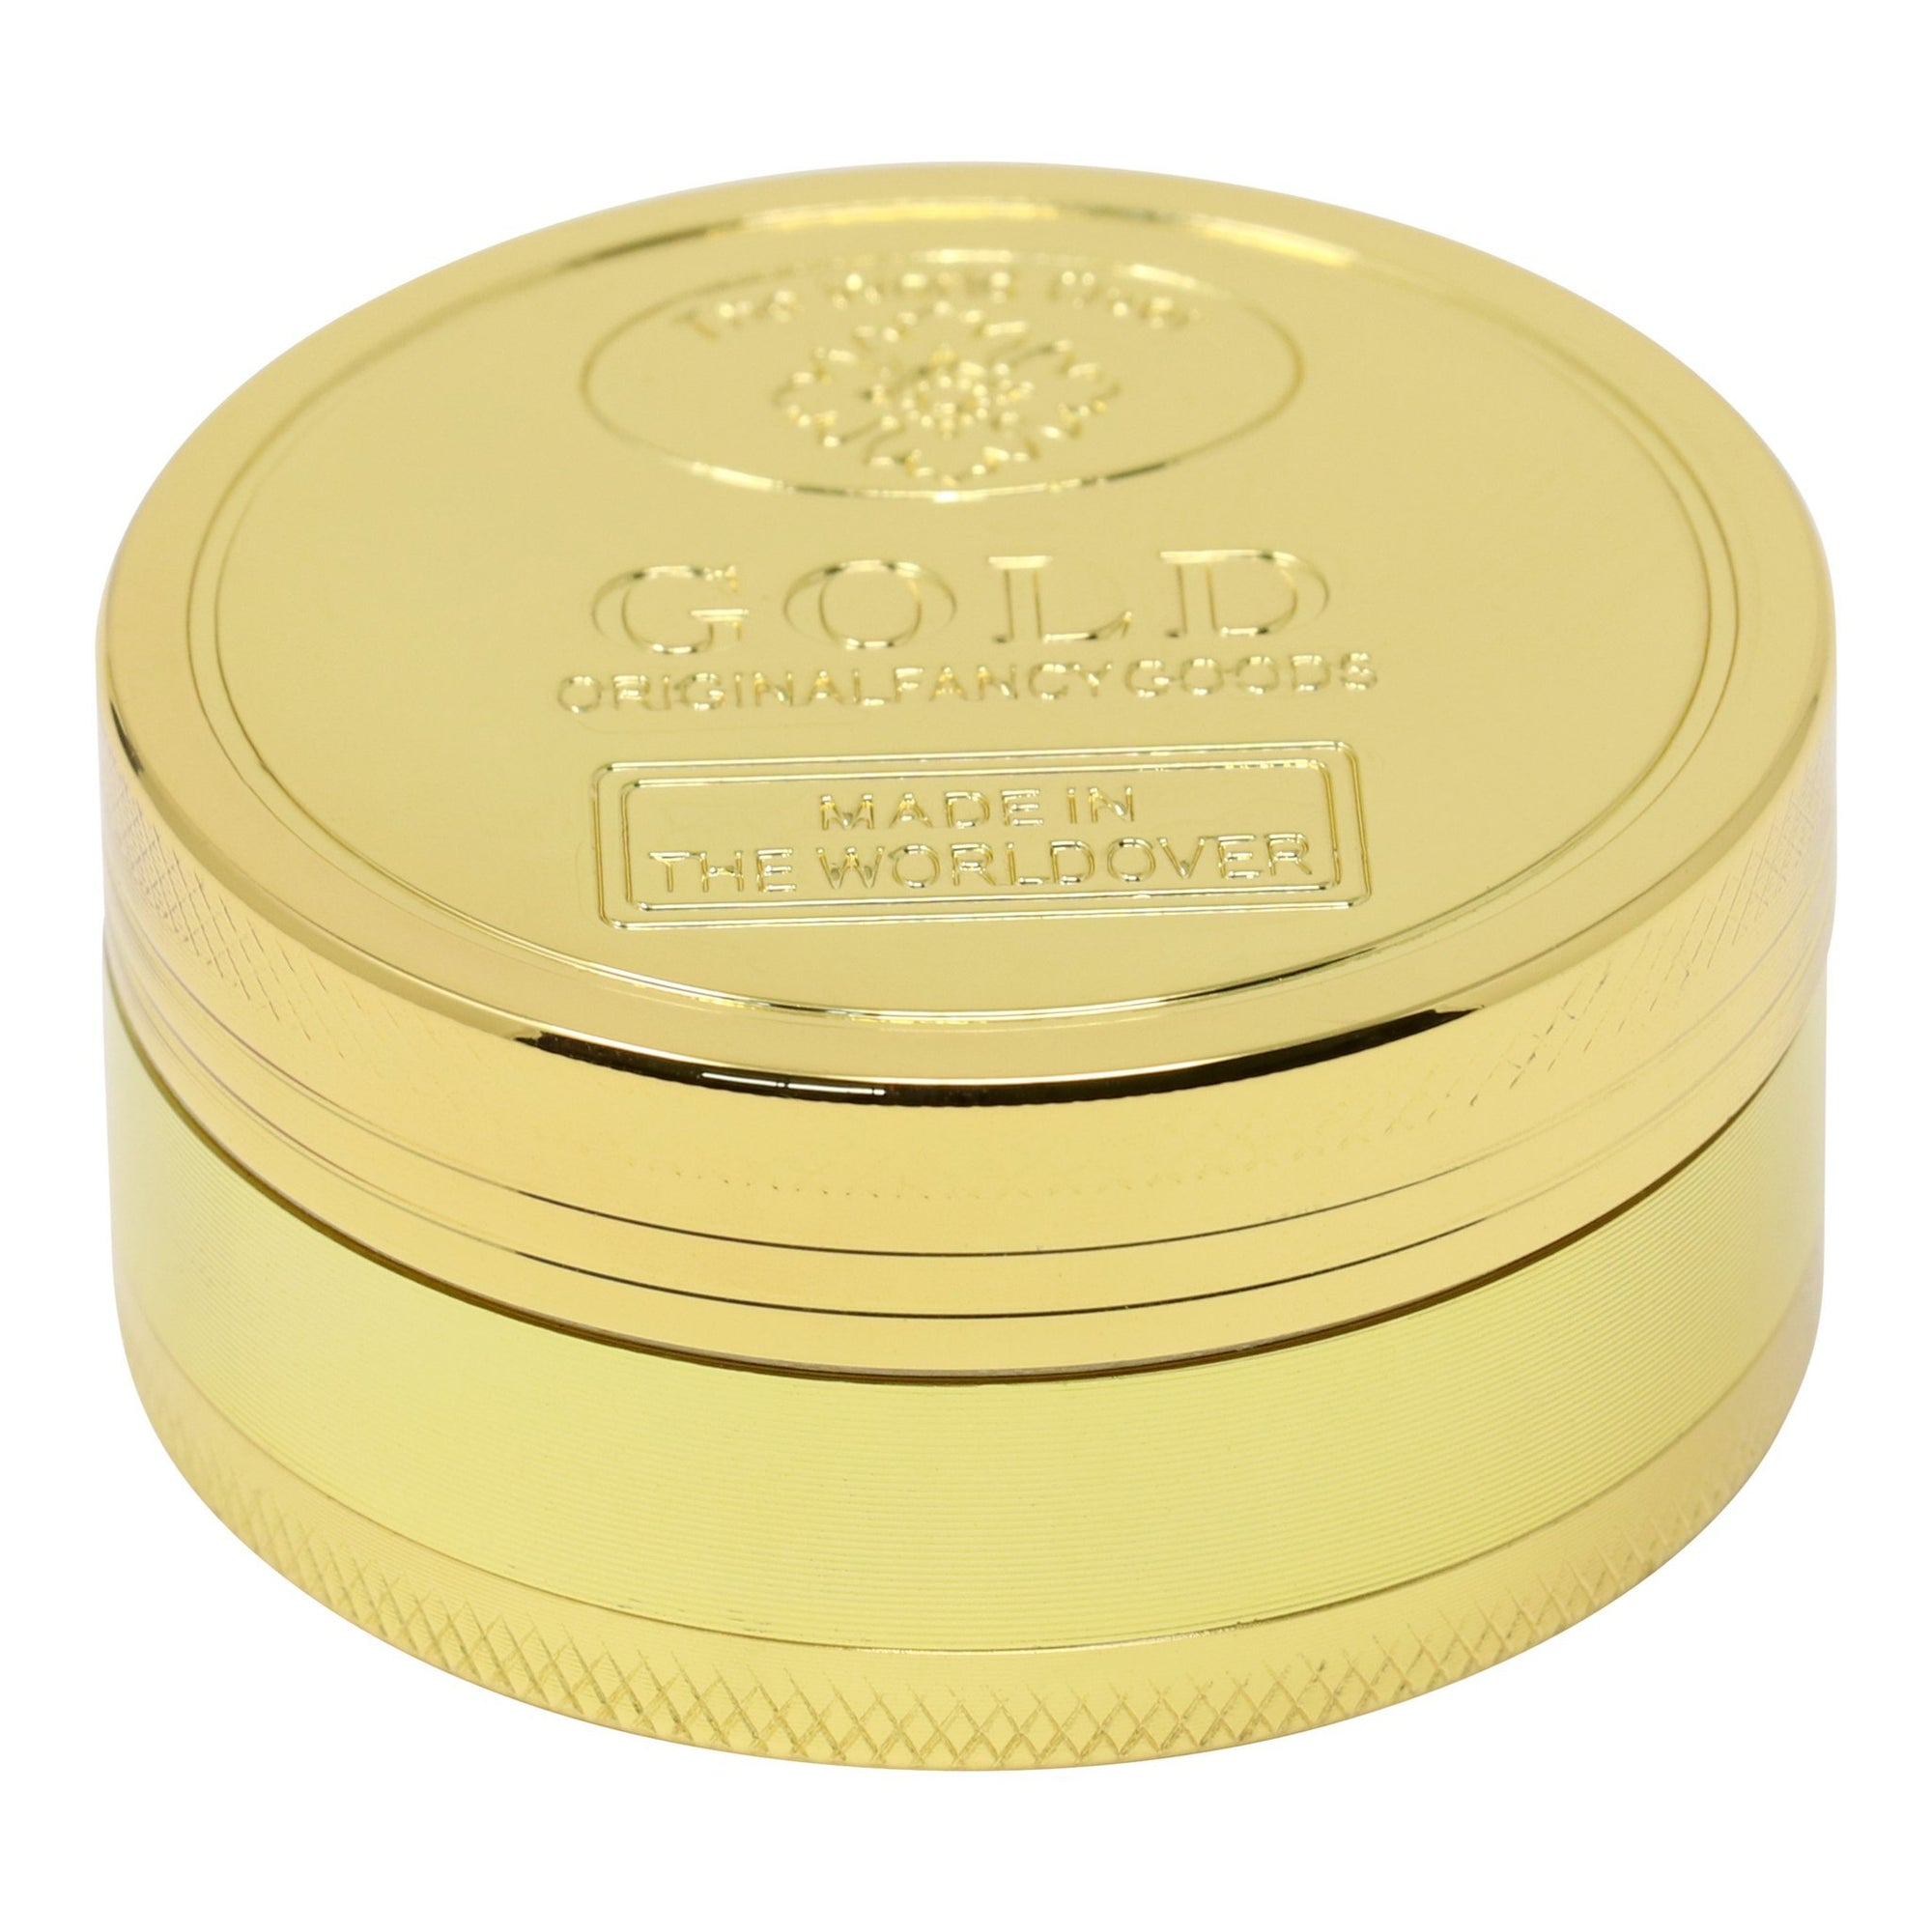 Elegant 40mm in diameter slick metal herb grinder in smooth glossy exterior word gold embossed on lid